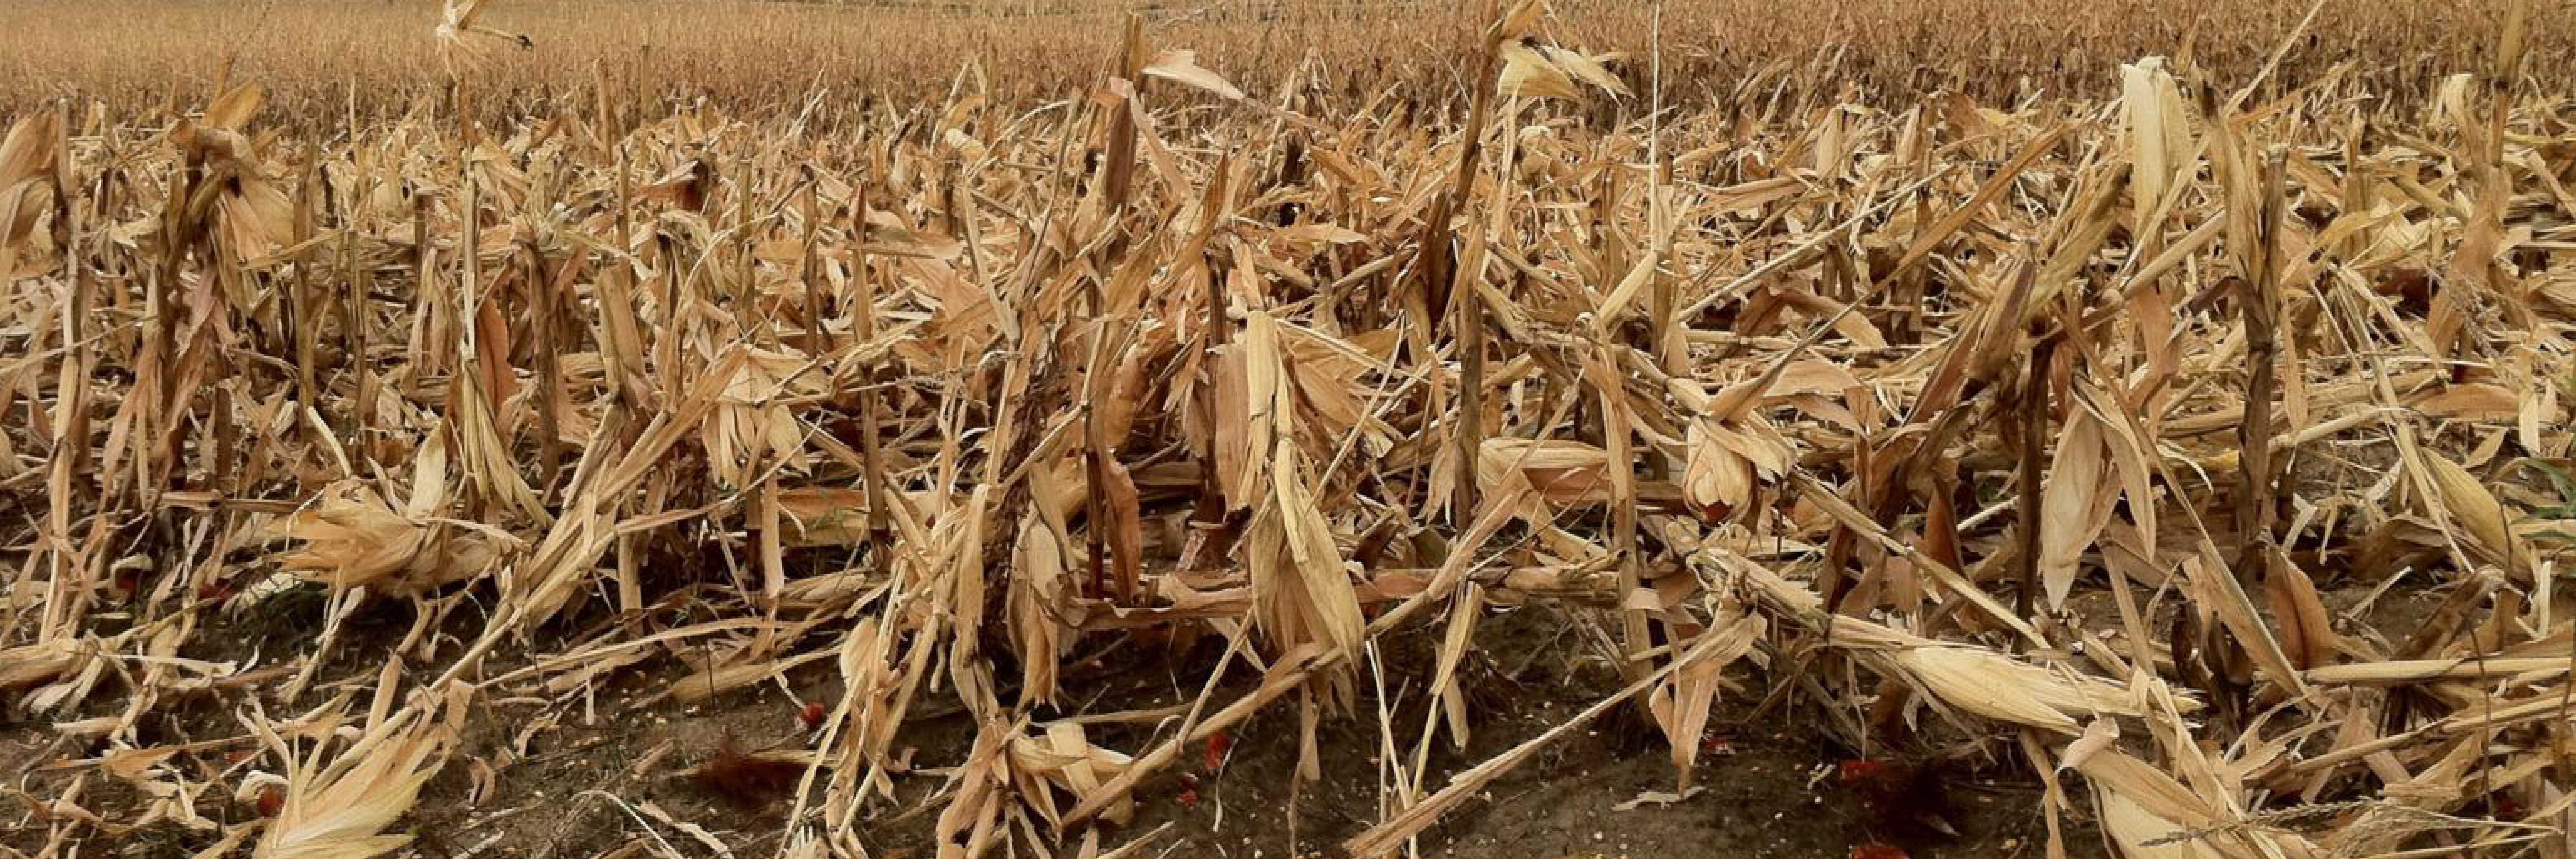 Calculating the Nutrient Value of Corn Stover